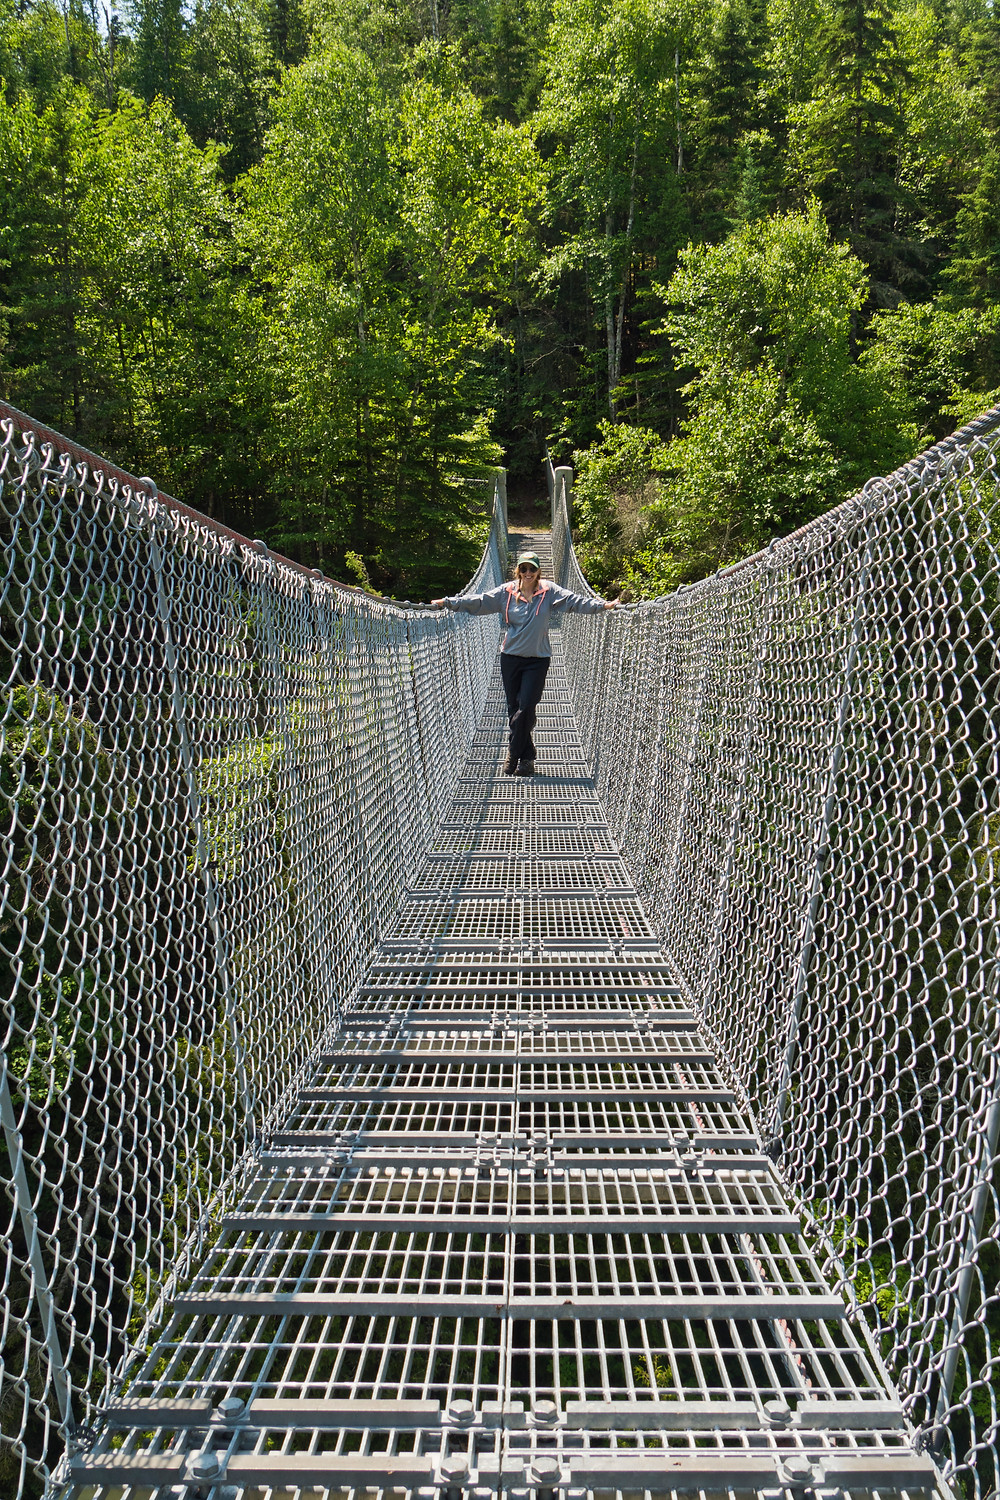 Leah, hanging out on the suspension bridge.